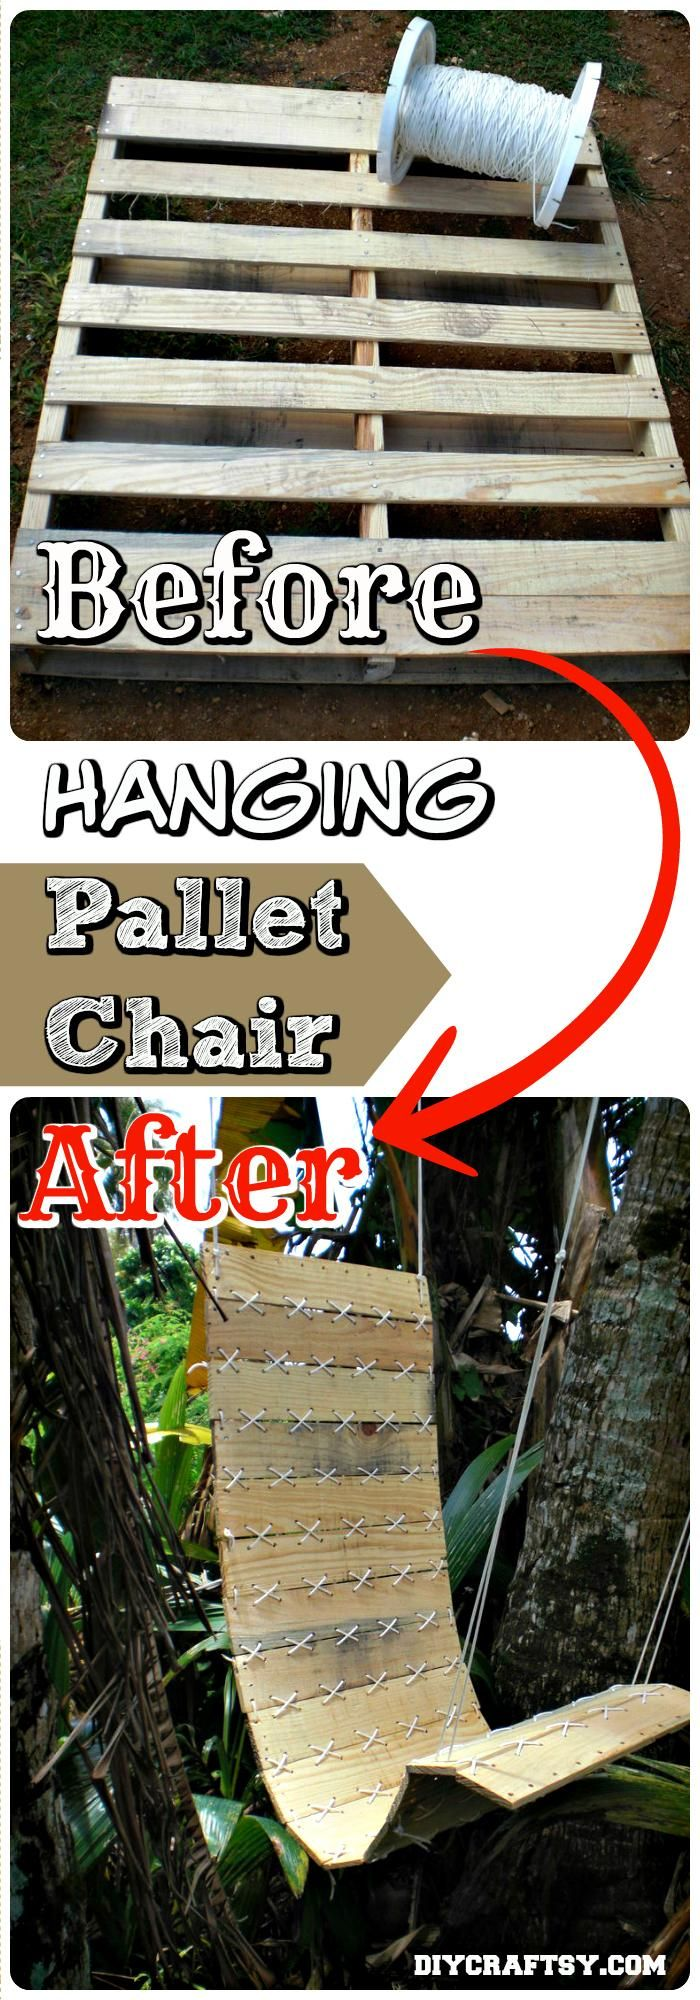 Diy comfortable pallet adirondack chair 101 pallets - Top 25 Best Pallet Chairs Ideas On Pinterest Pallet Furniture Old Pallets And Brown Outdoor Furniture